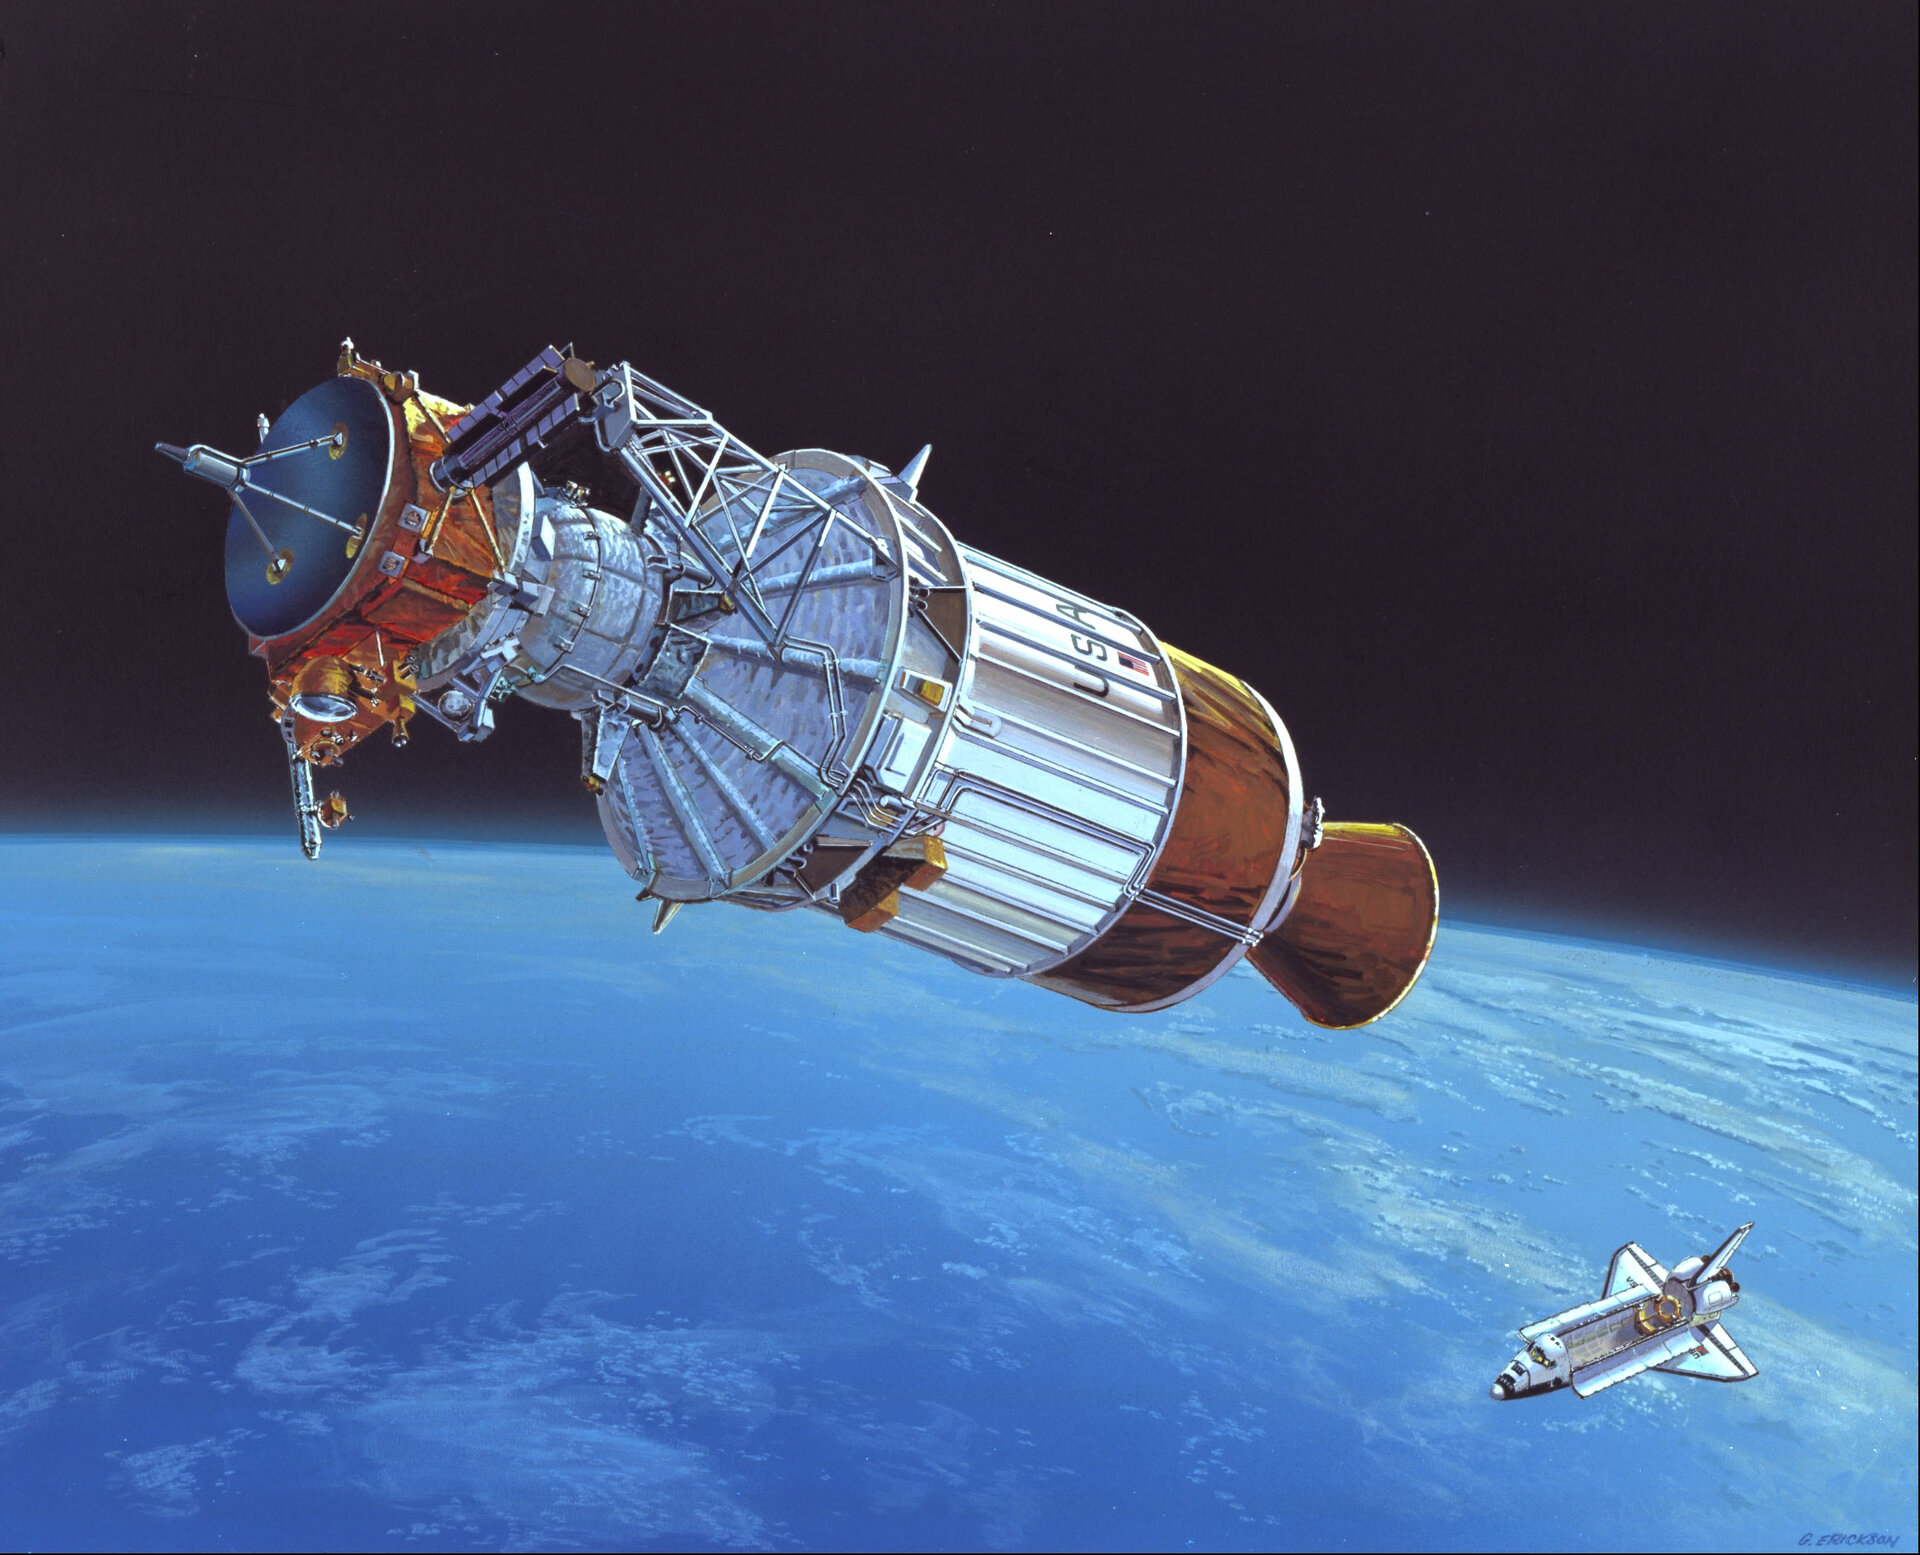 Artist's impression of Ulysses released from the Space Shuttle, 6 October 1990